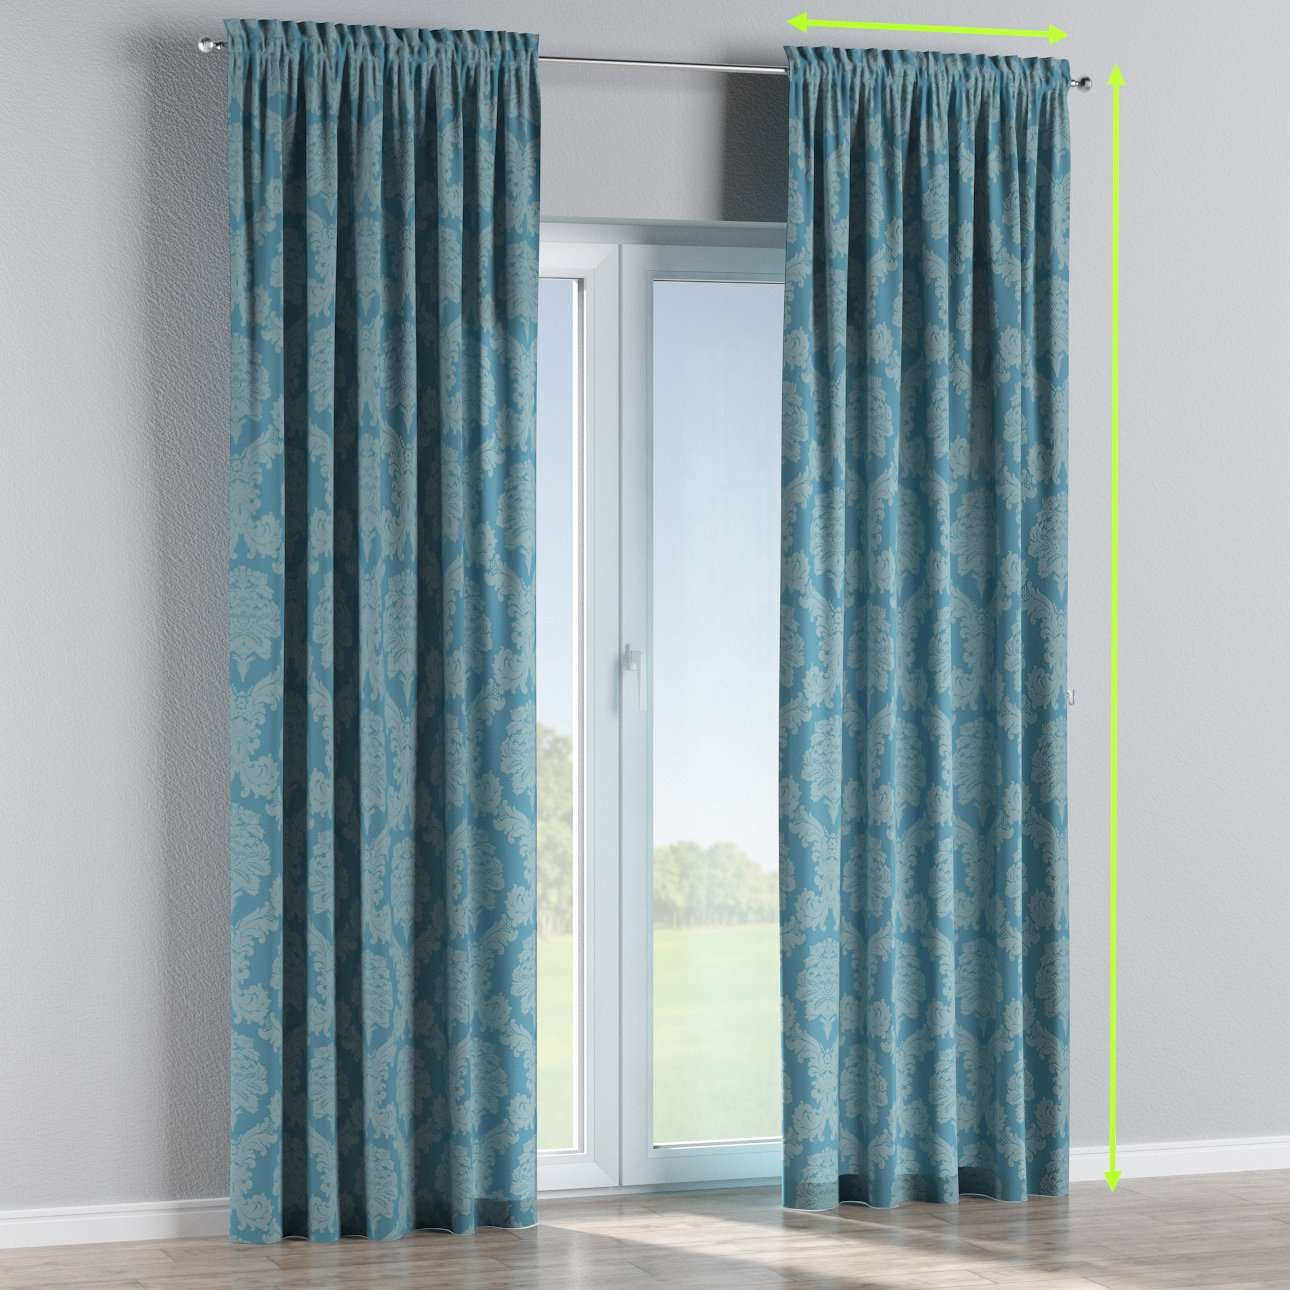 Slot and frill lined curtains in collection Damasco, fabric: 613-67